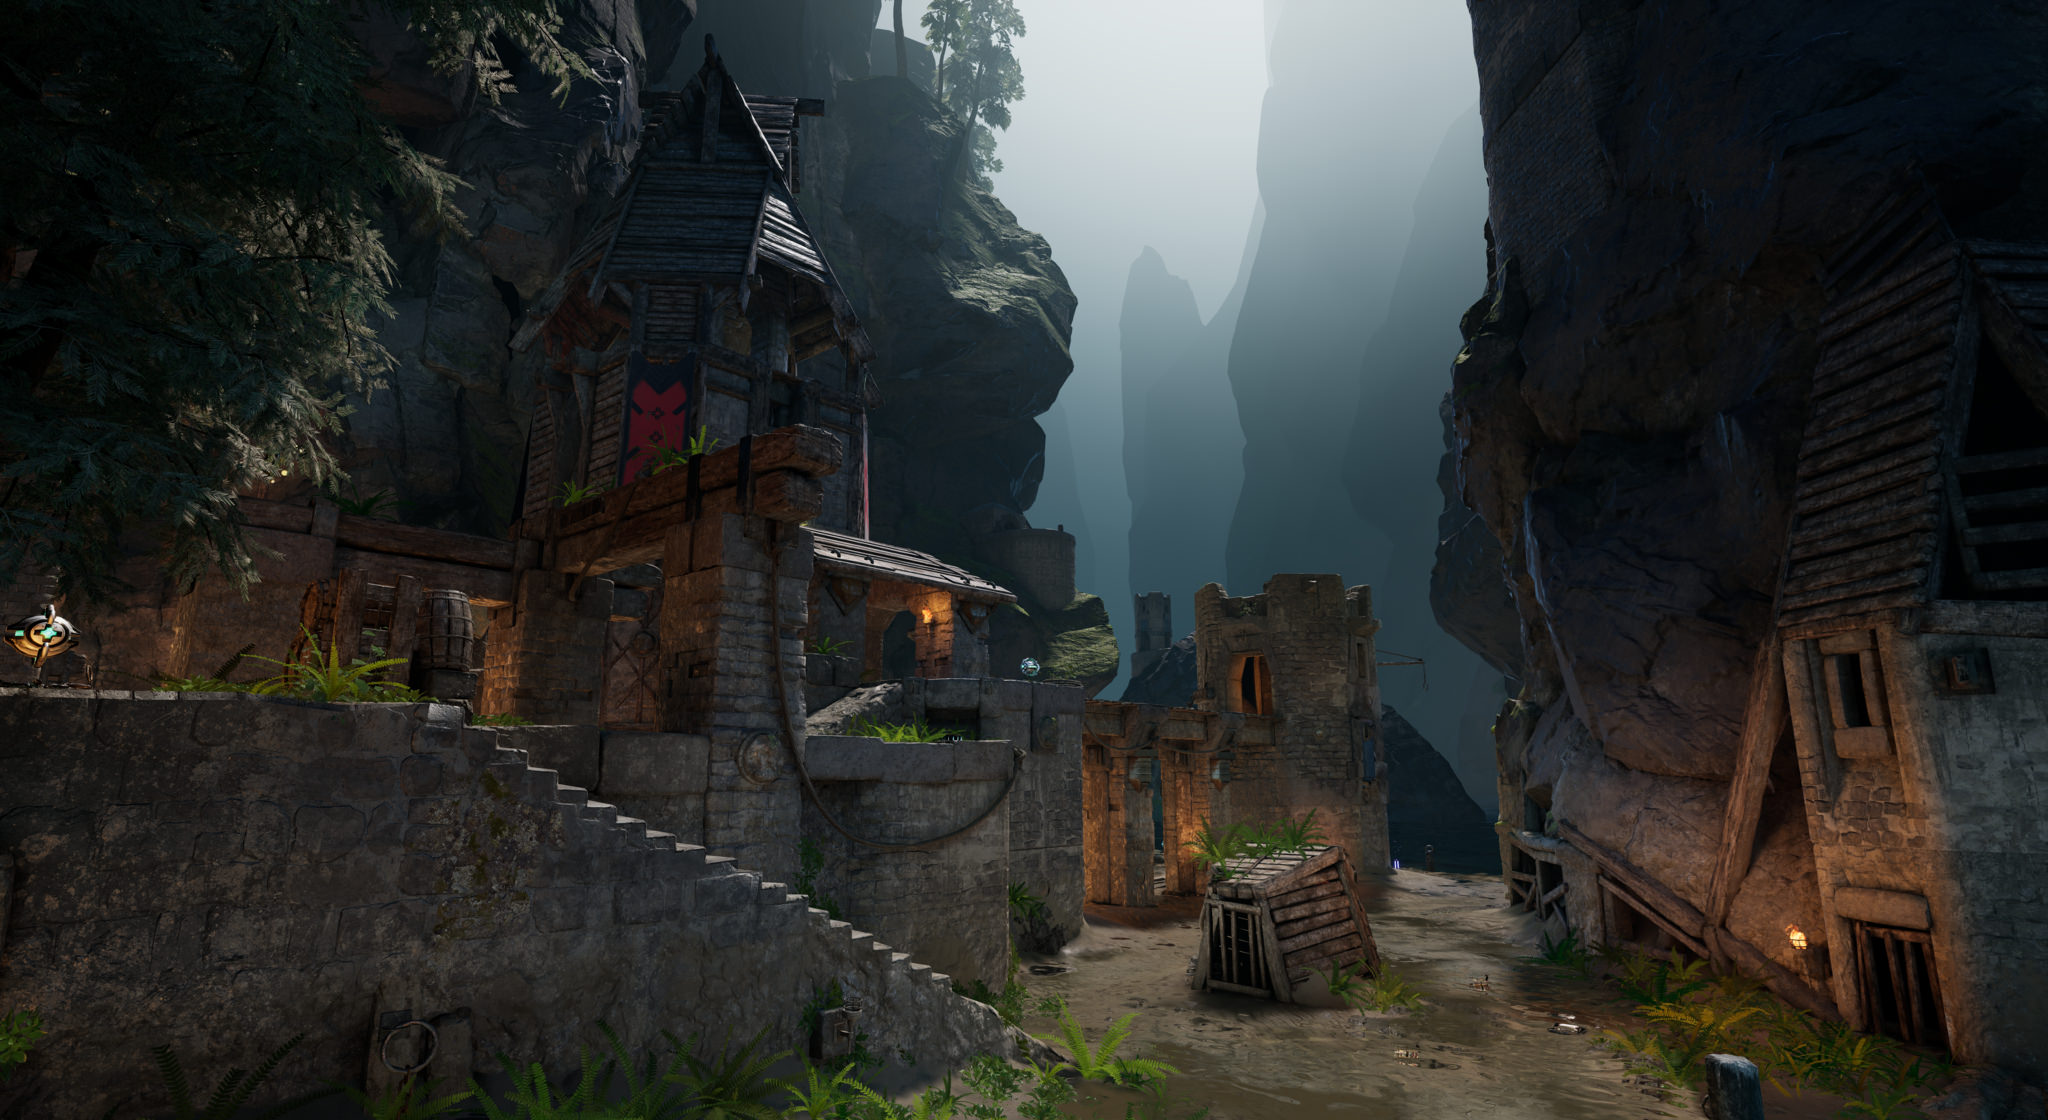 Check out Unreal Tournament's new map, Underland - VG247